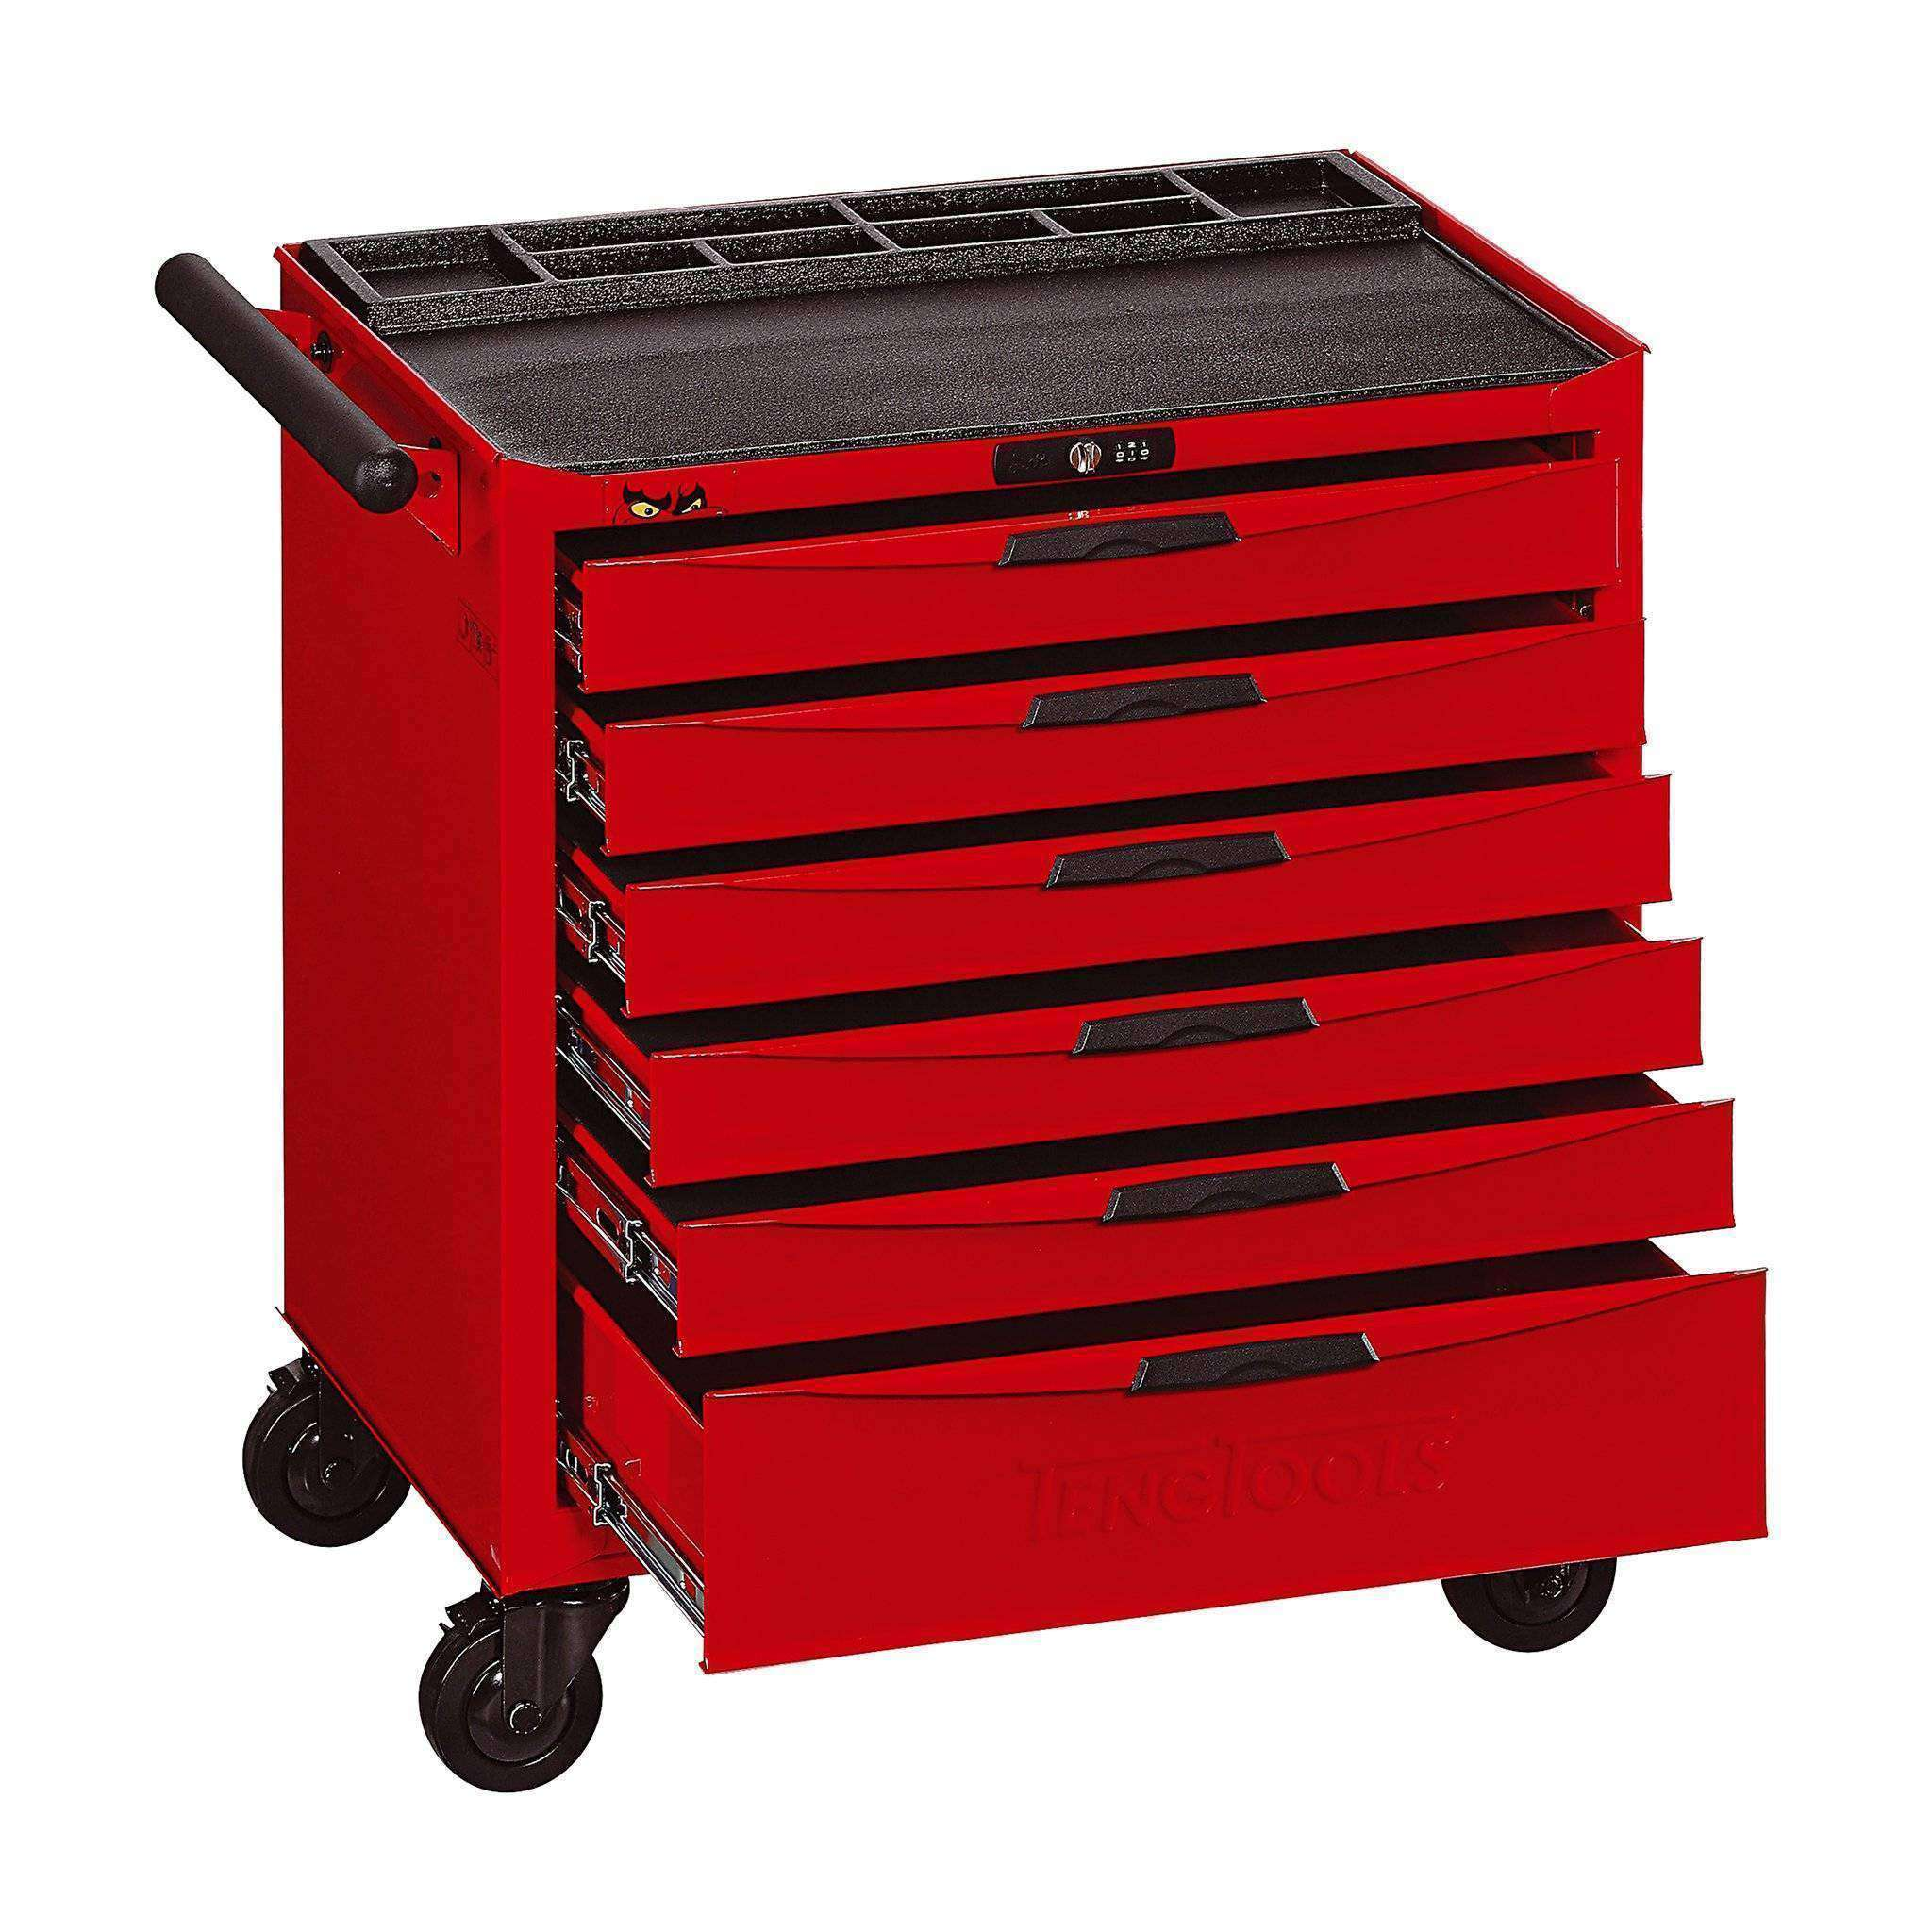 Teng Tools TCW806N - 6 Drawer 8 Series Roller Cabinet - Teng Tools USA